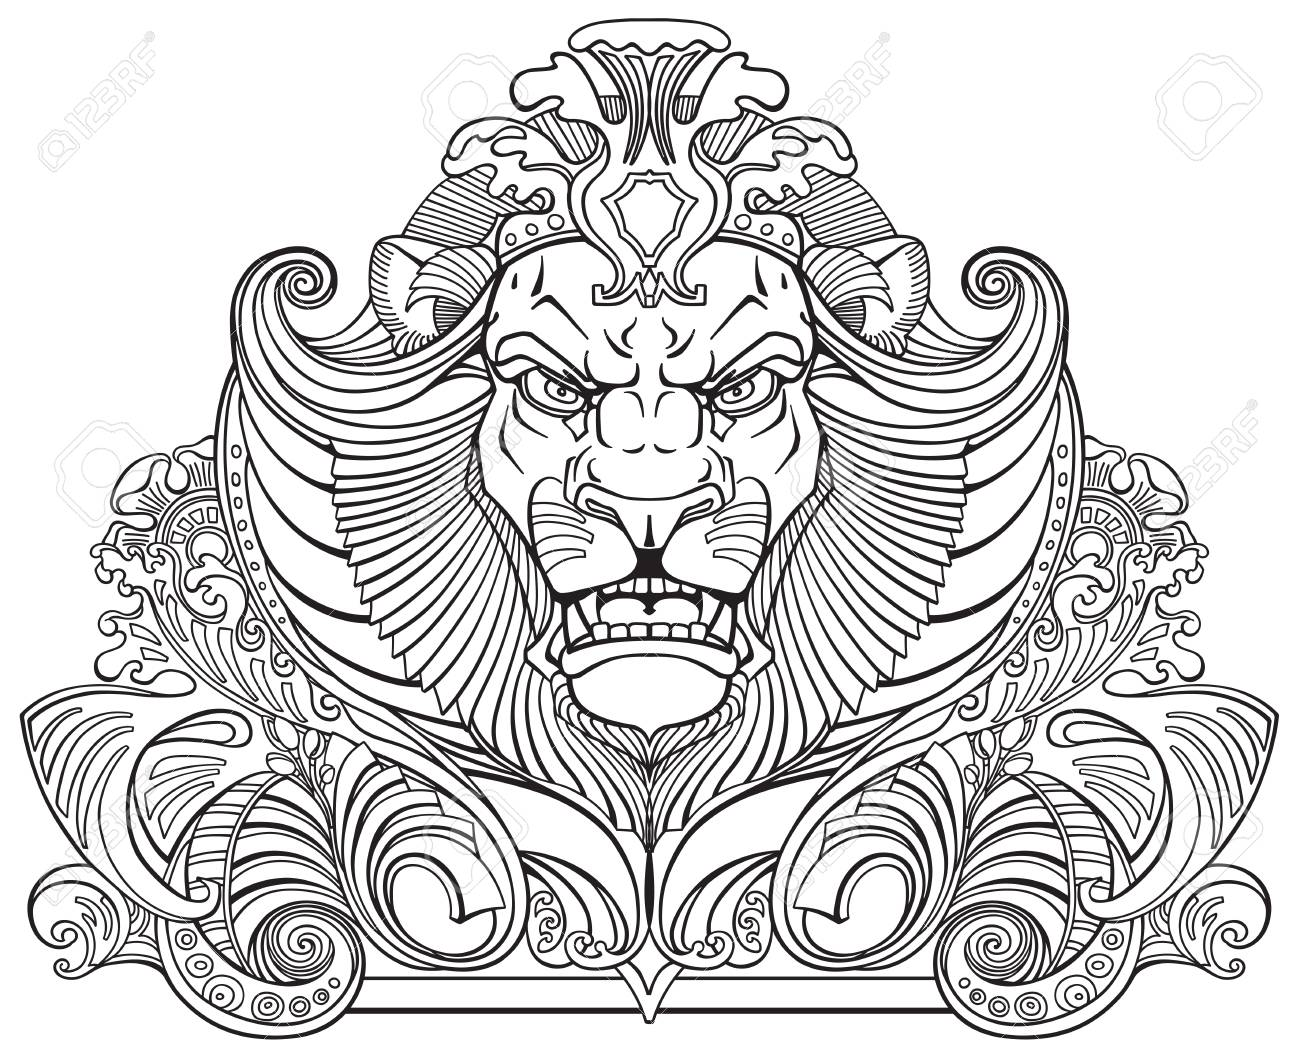 Head Of Lion King Front View Ornament Tattoo Black And White Royalty Free Cliparts Vectors And Stock Illustration Image 73640580 Small lion tattoo lion head tattoos king tattoos foot tattoos swahili tattoo cat design design art kritzelei tattoo doodle tattoo tattoo outline piercing tattoo tattoo drawings icon tattoo mini. head of lion king front view ornament tattoo black and white